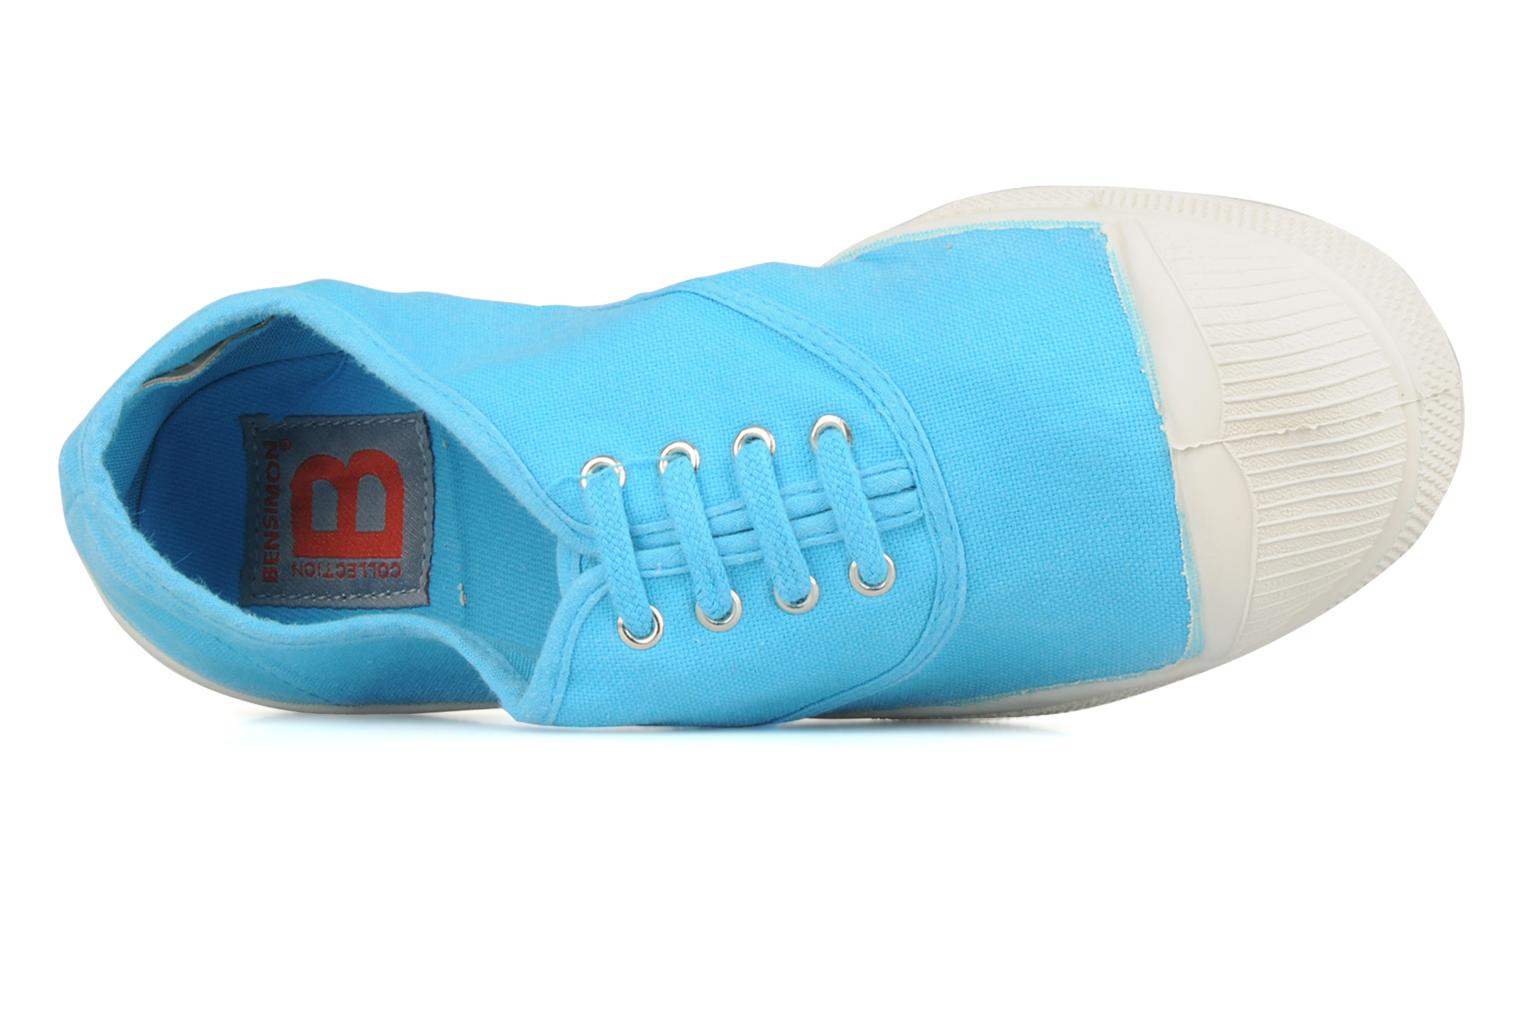 Tennis Lacets Turquoise exclu